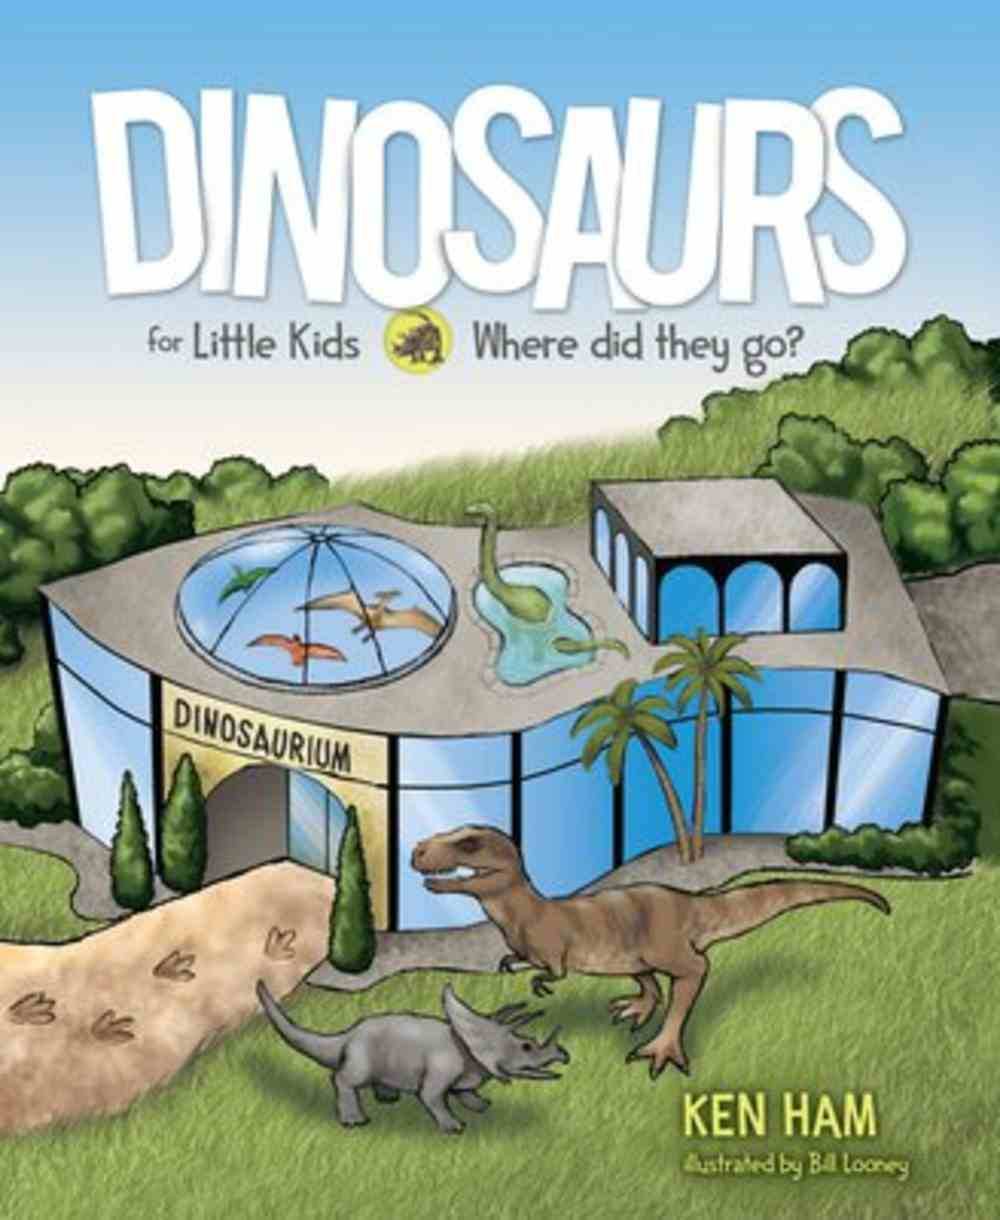 Dinosaurs For Little Kids: Where Did They Go? Hardback